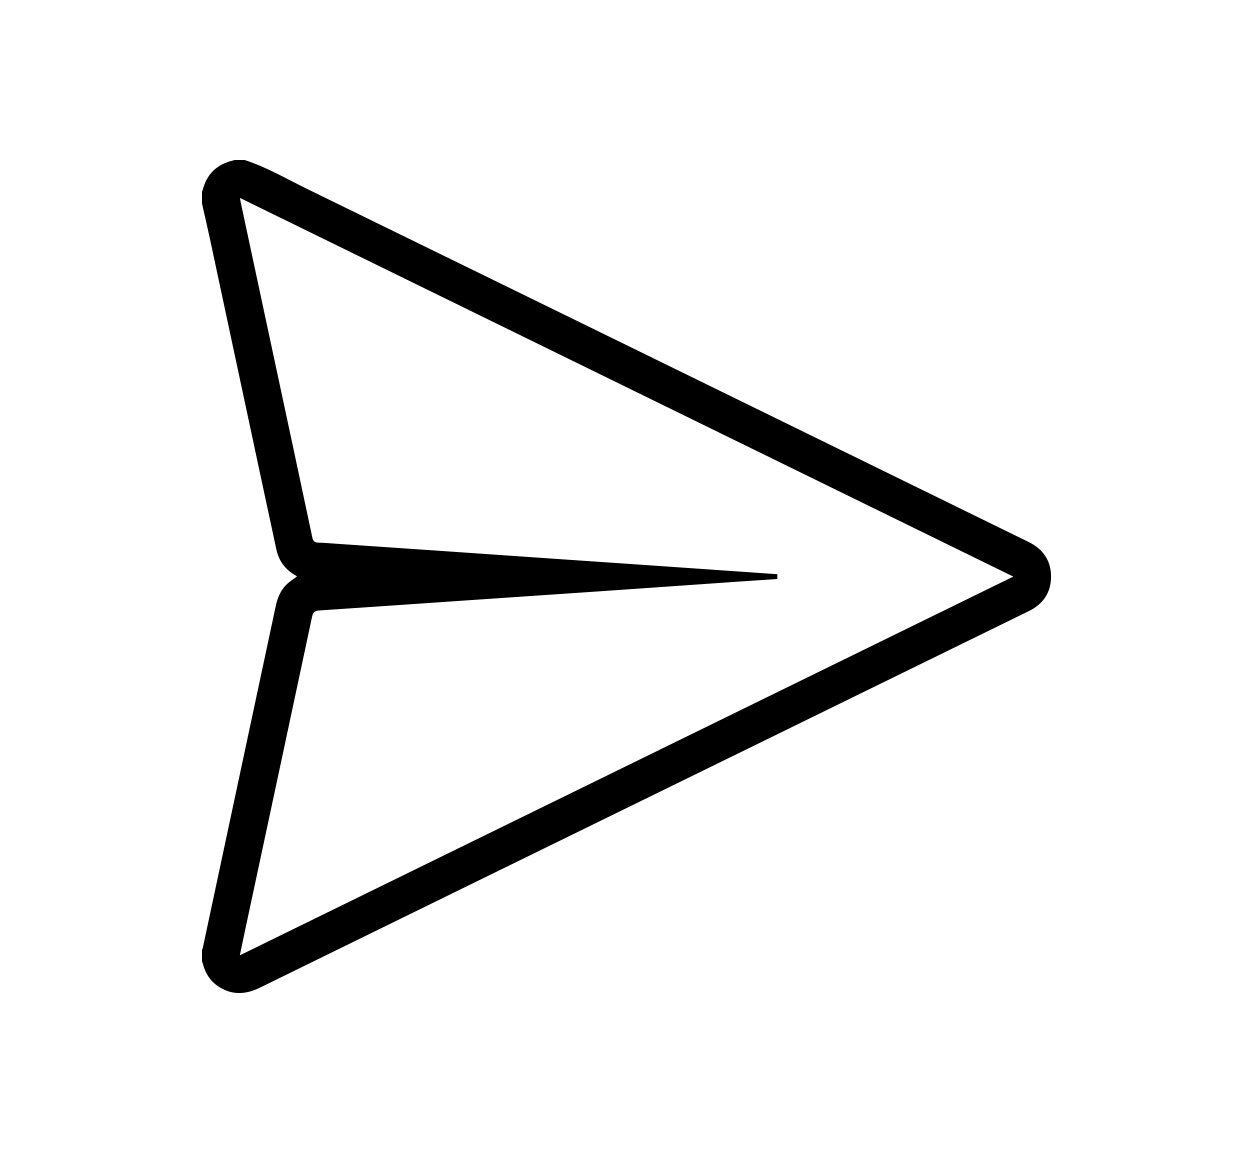 Send-Icon-PNG-1